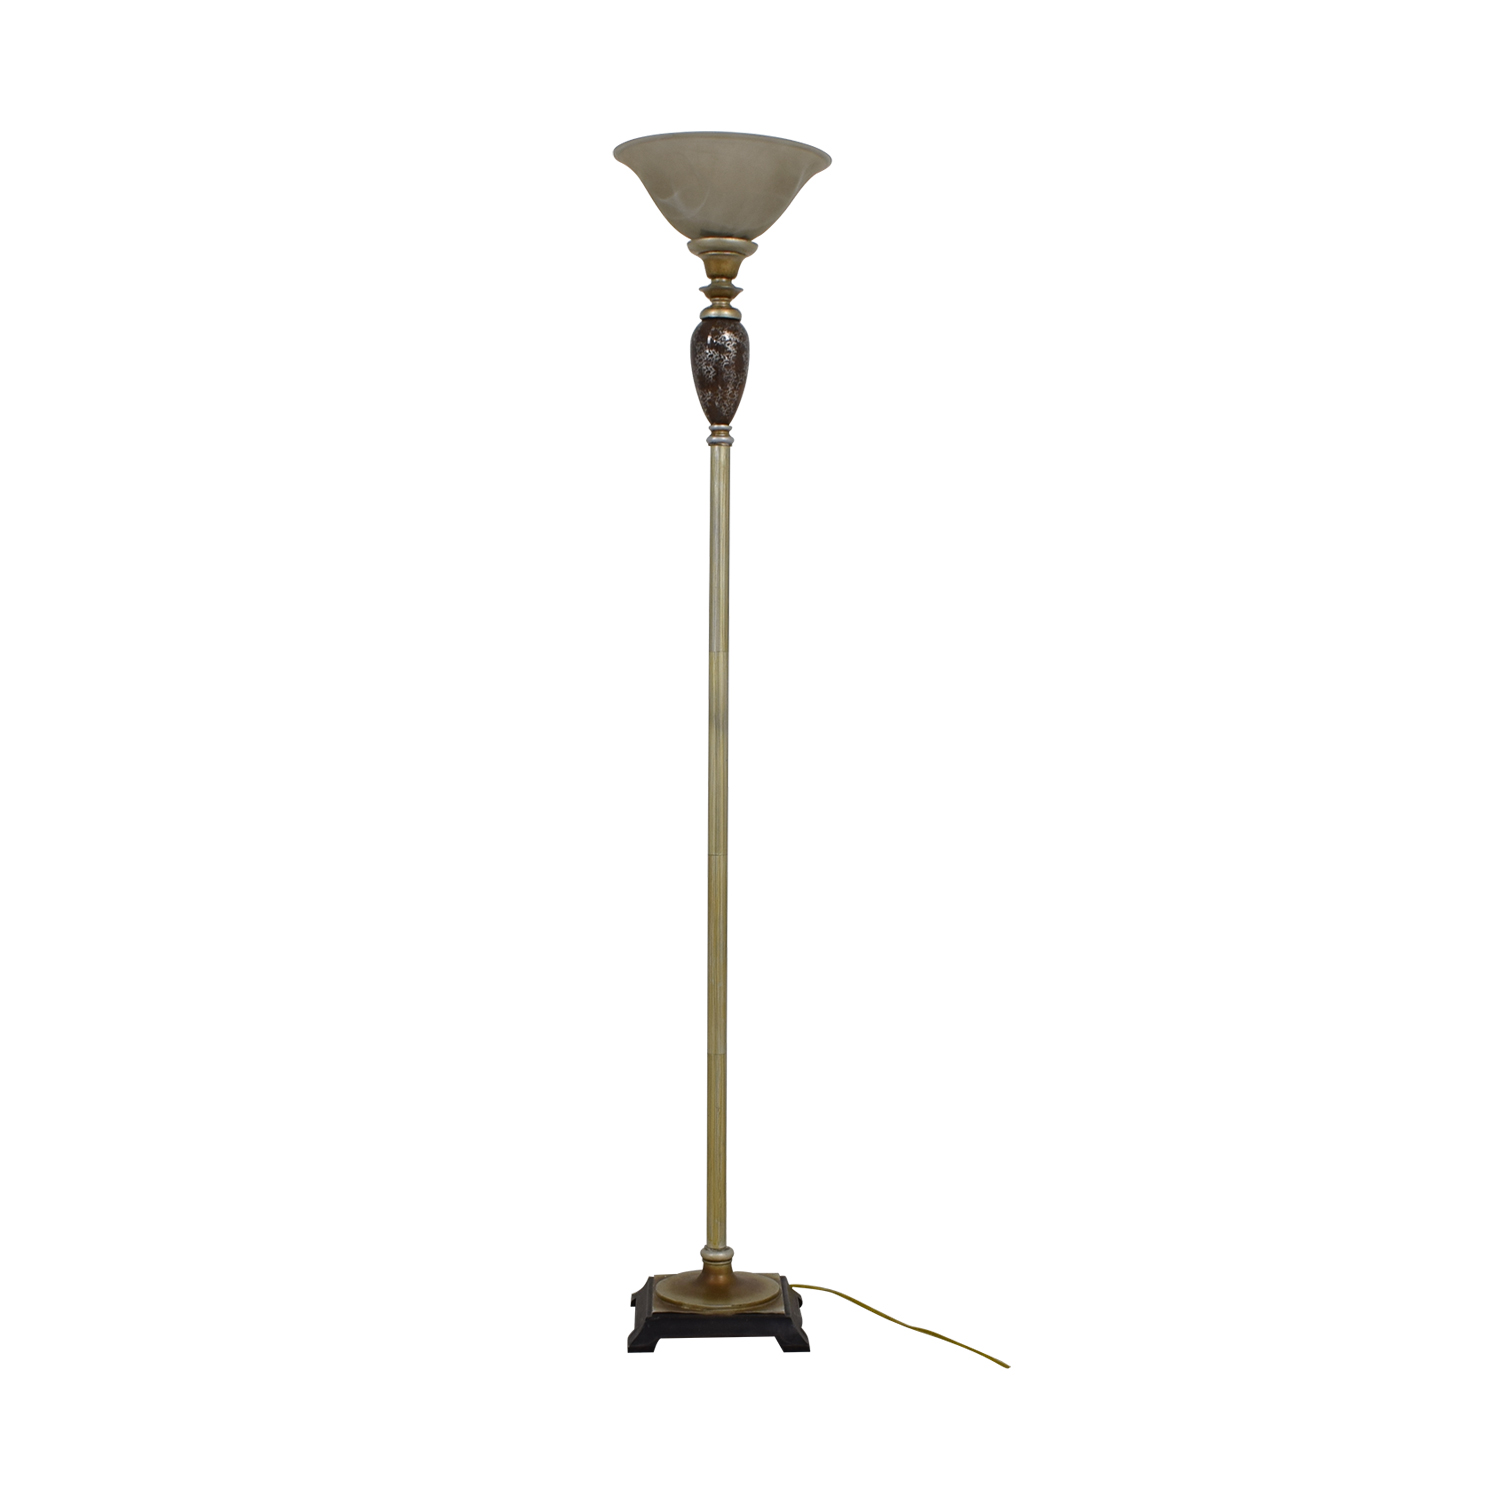 Bed Bath and Beyond Bed Bath and Beyond Torchiere Floor Lamp dimensions